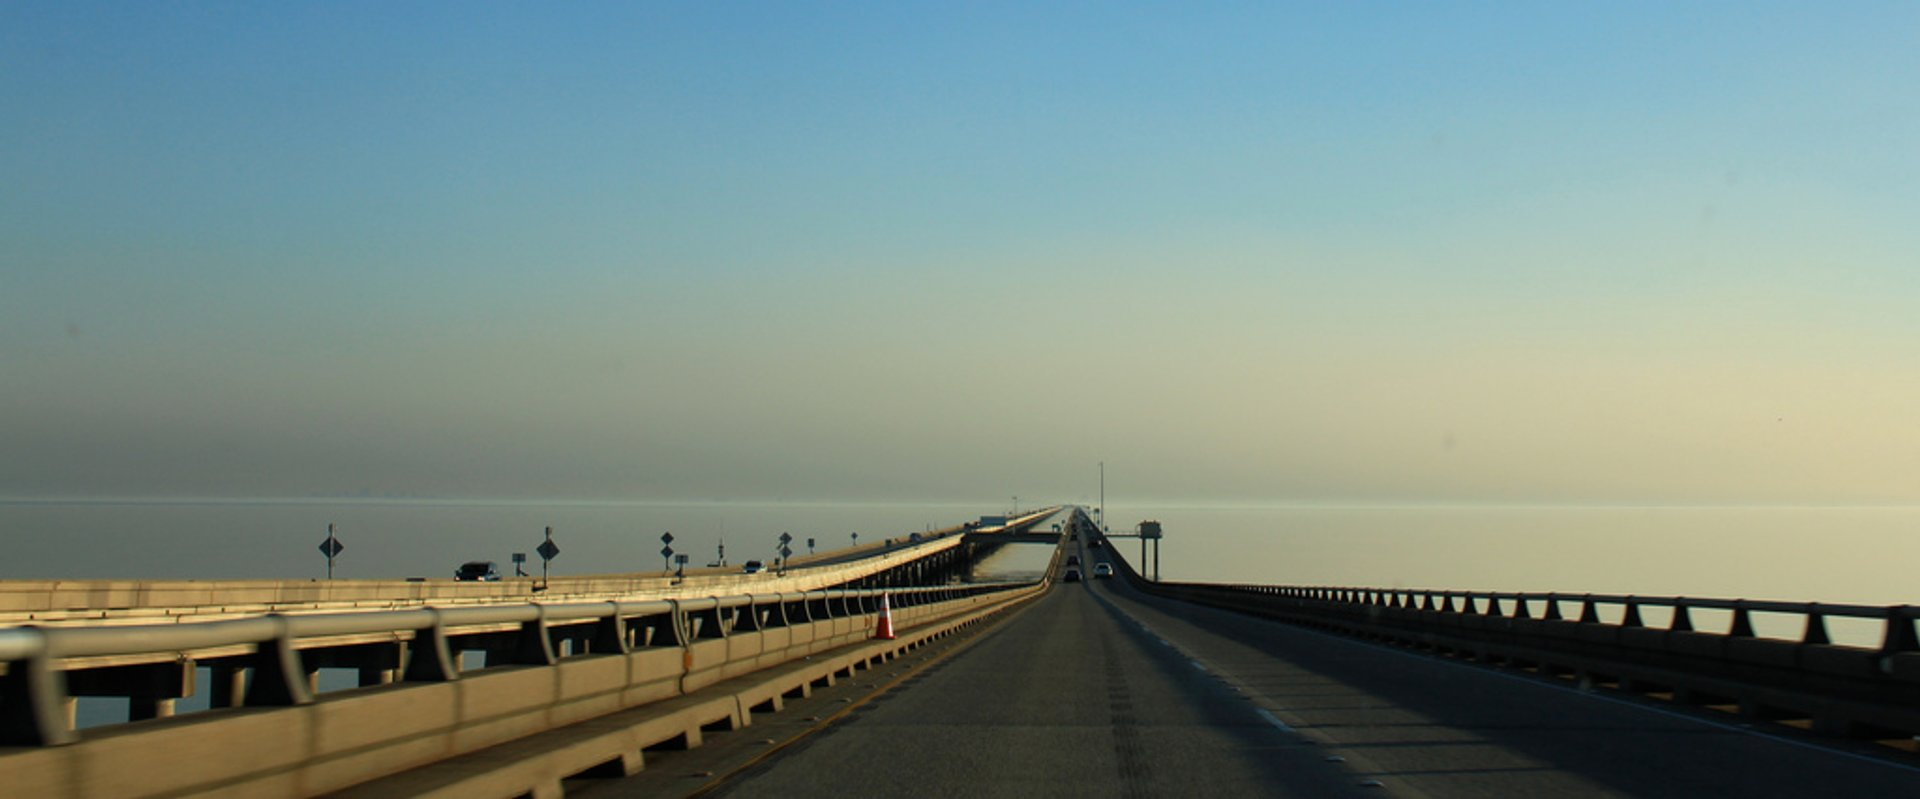 Best time for Lake Pontchartrain Causeway Bridge in New Orleans 2019